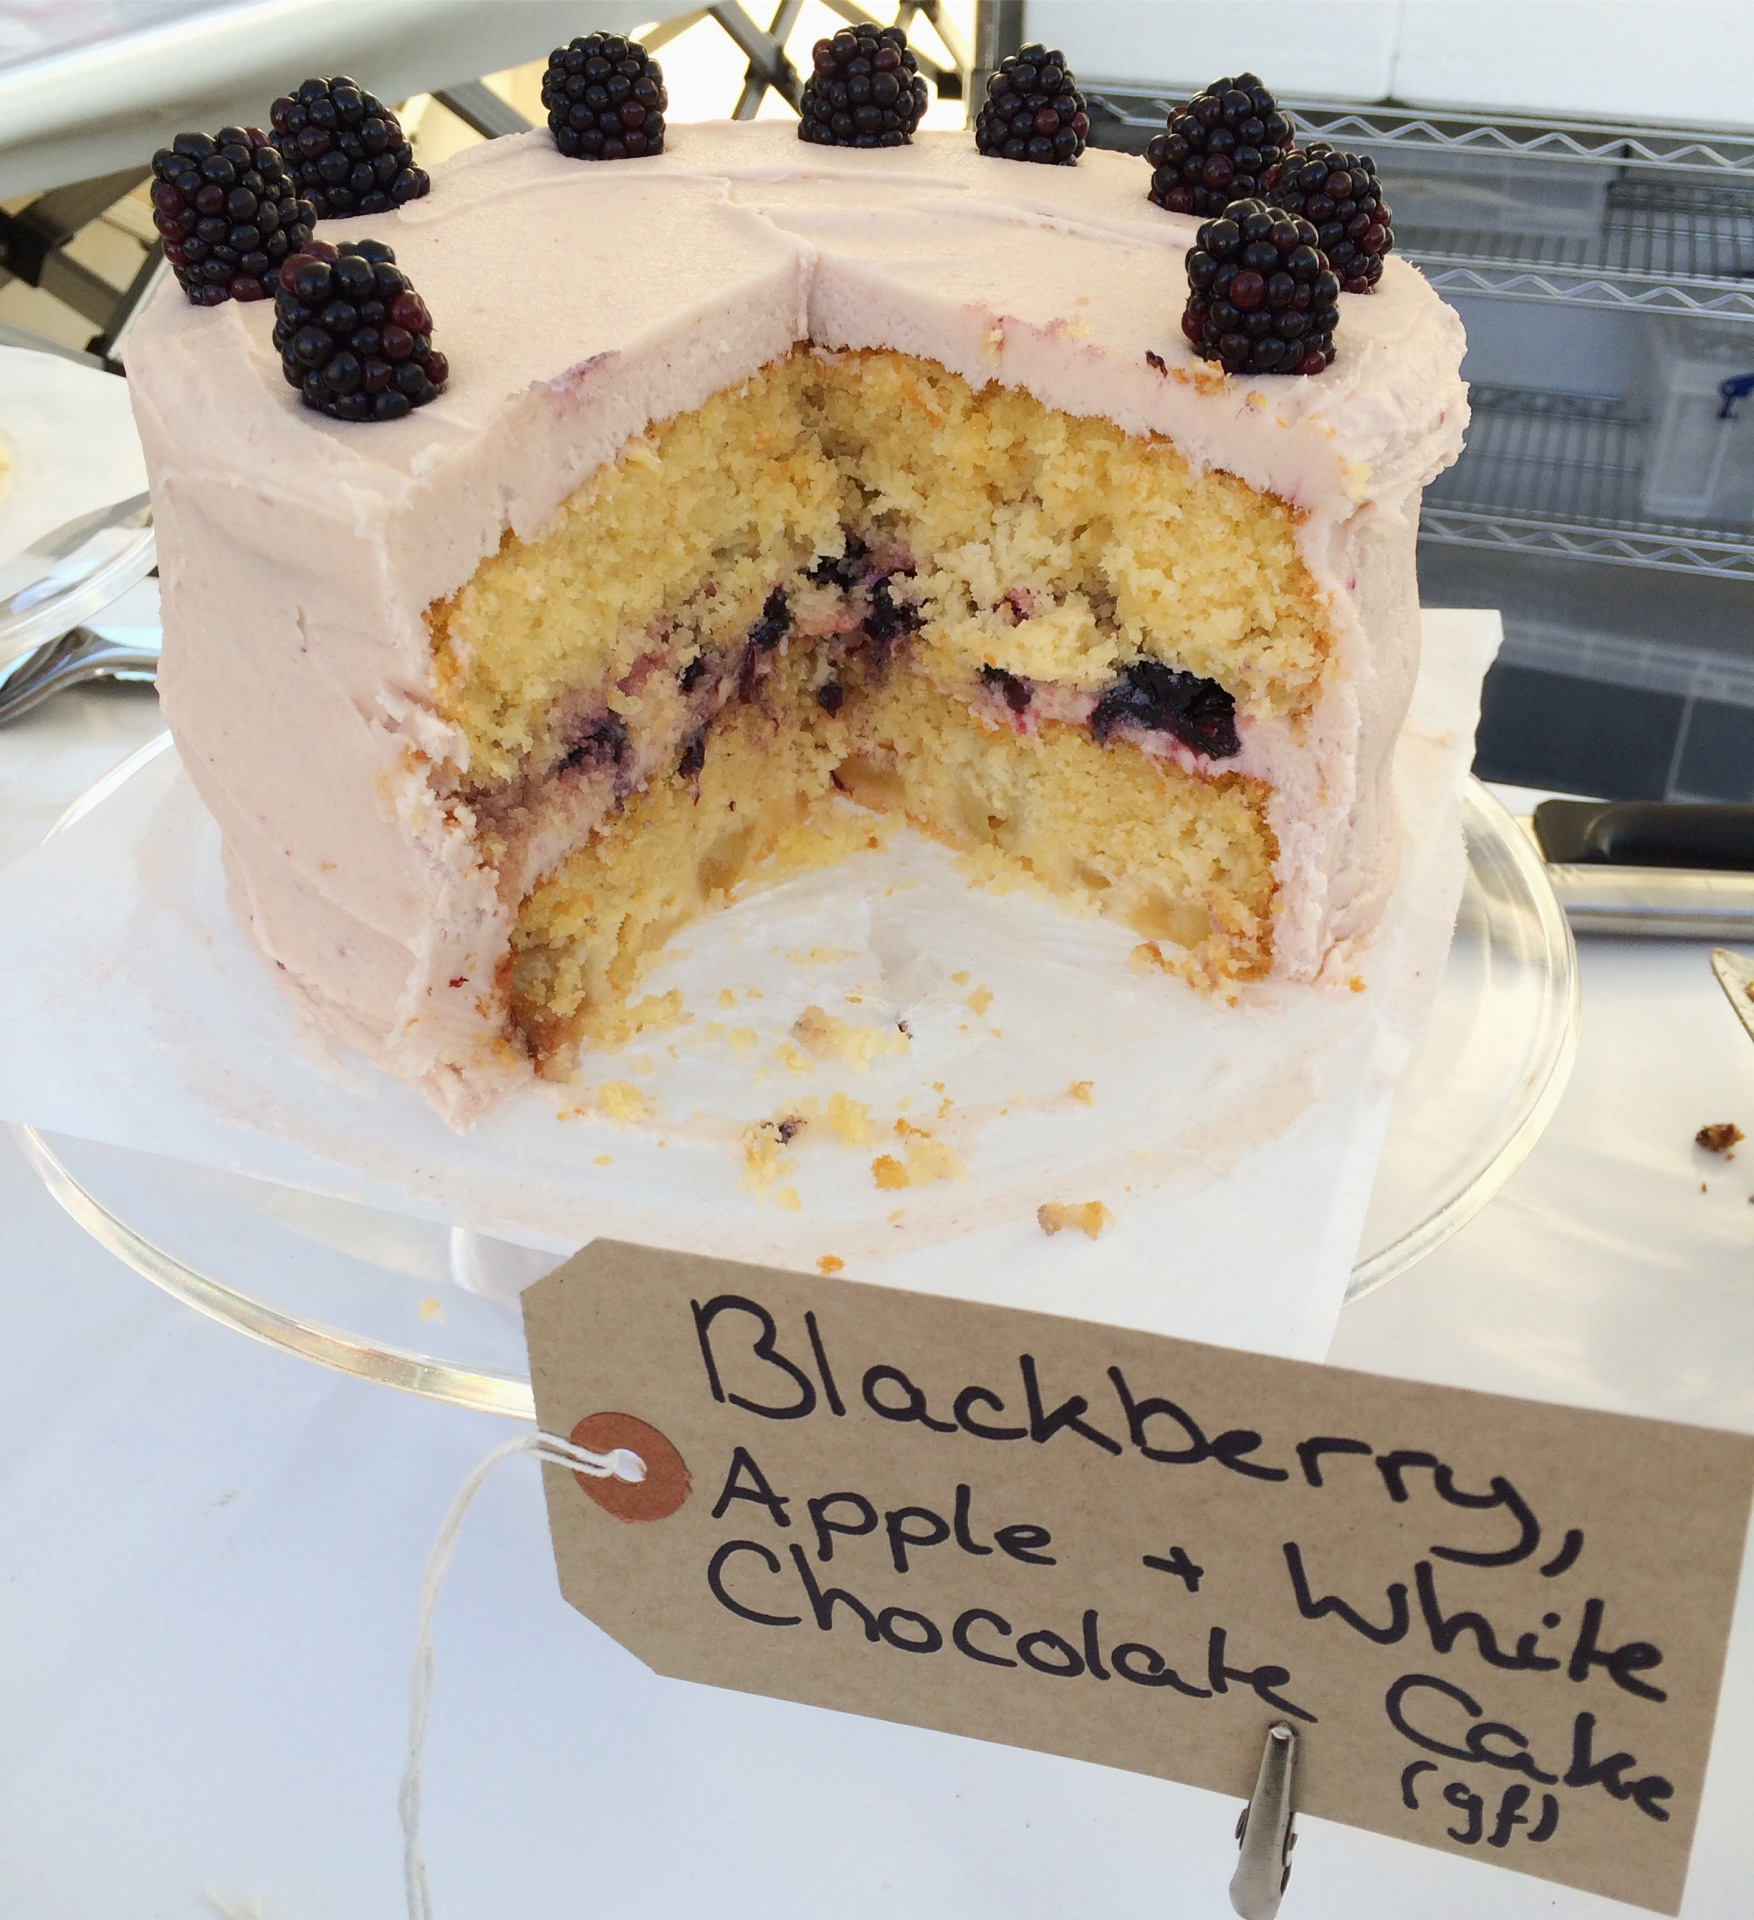 Blackberry, Apple and White Chocolate Cake